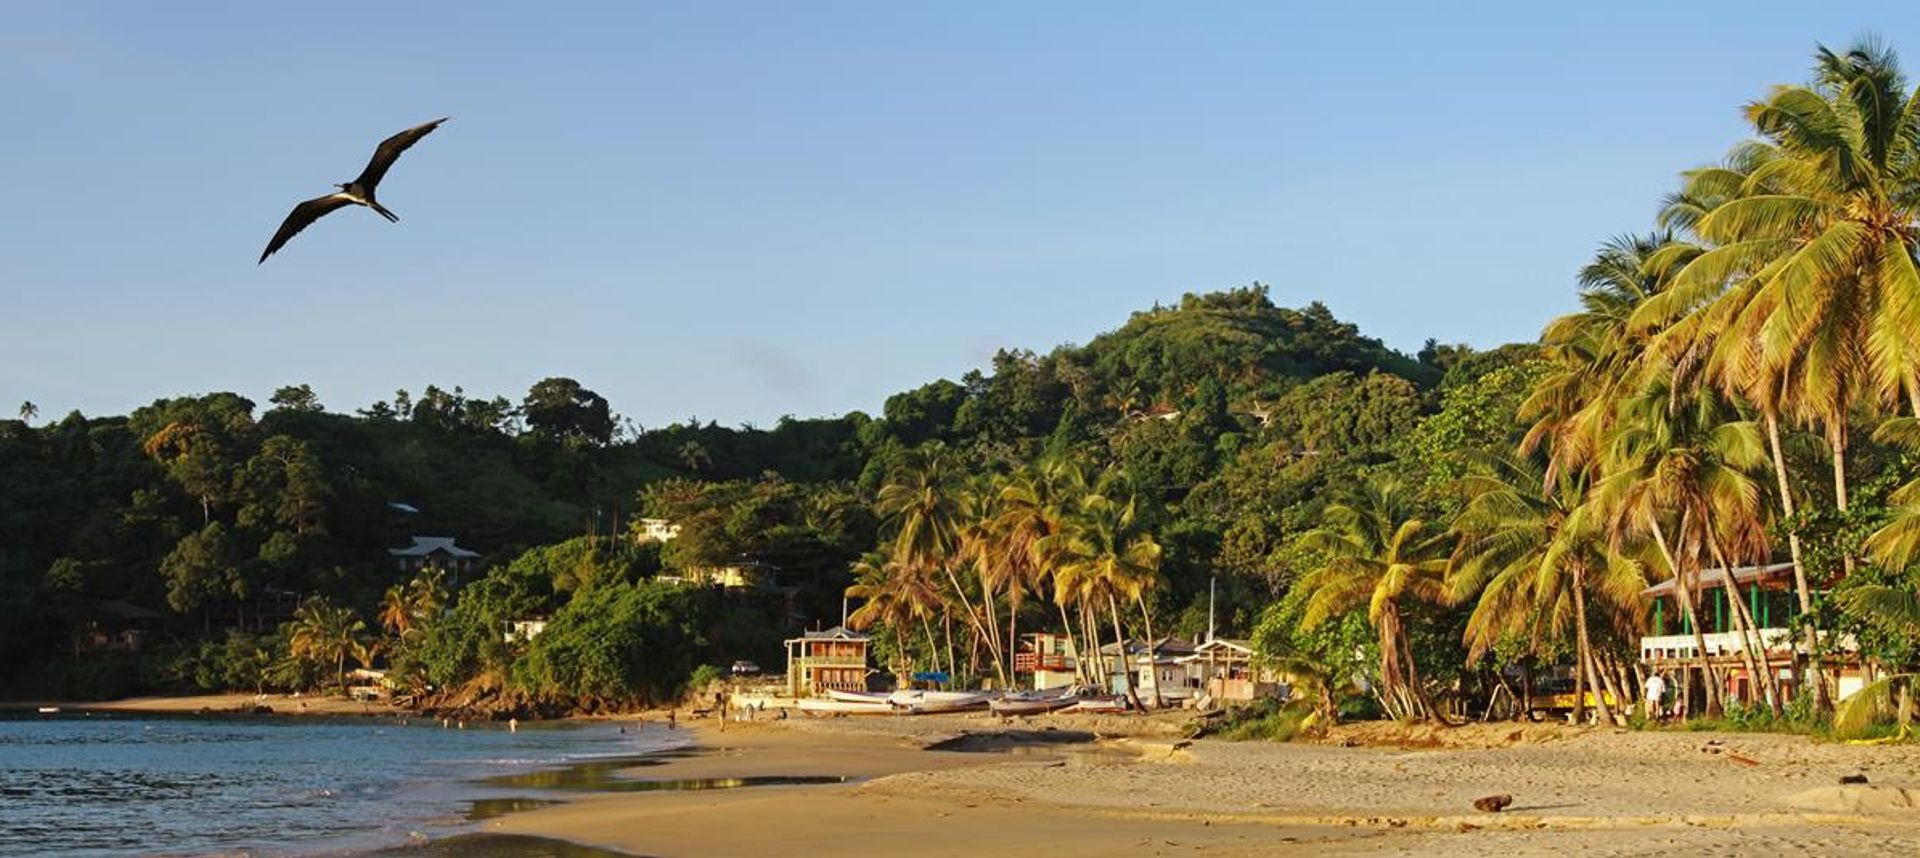 Trinidad and Tobago, Castara beach at sunrise (DrG)